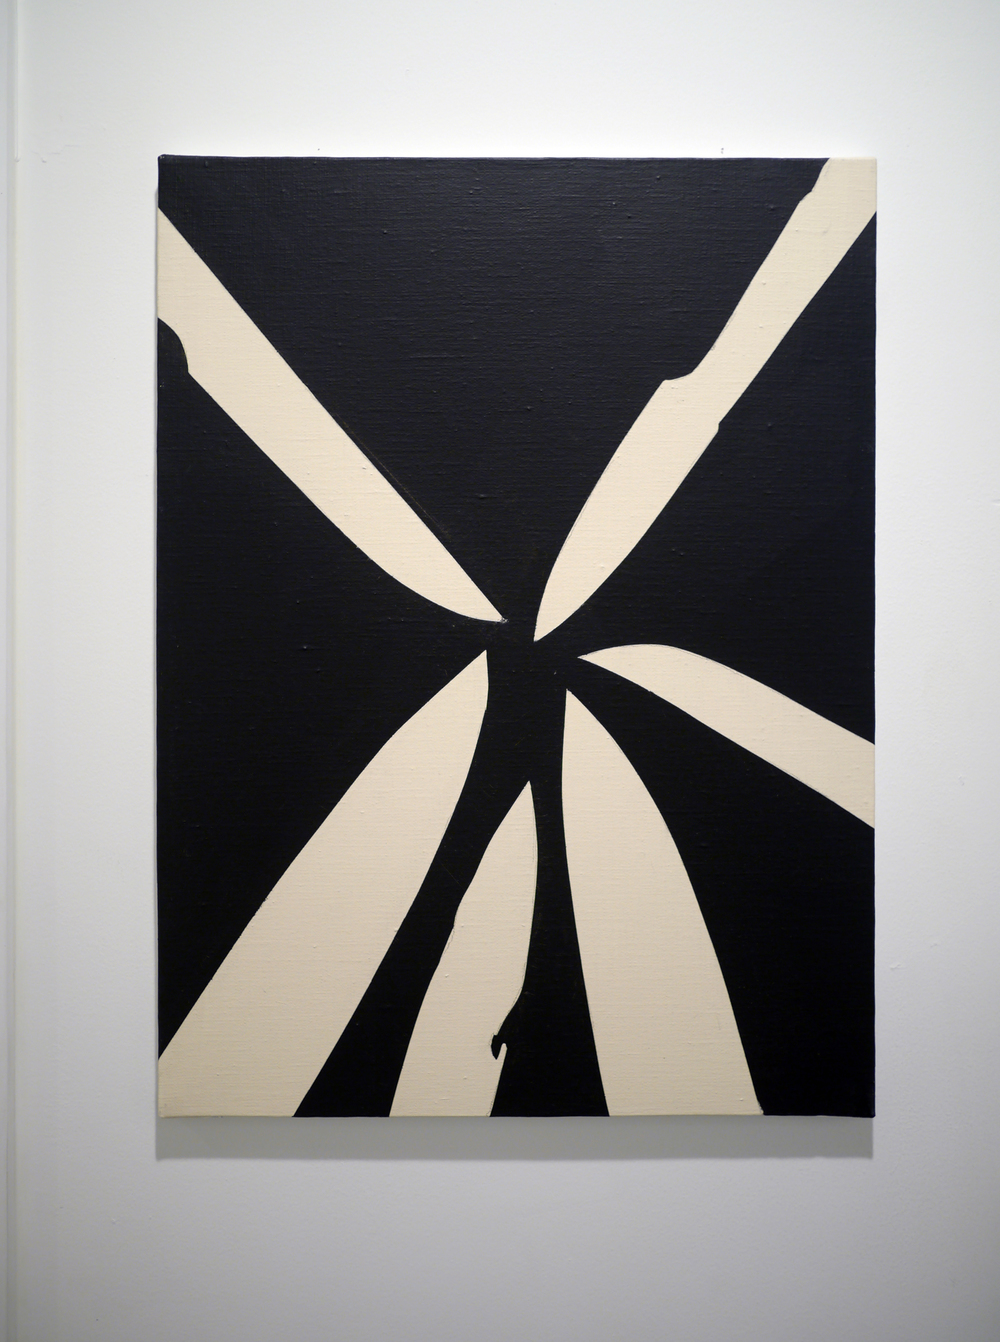 Six Knives.  Acrylic on canvas. 18 x 24 inches. 2013.